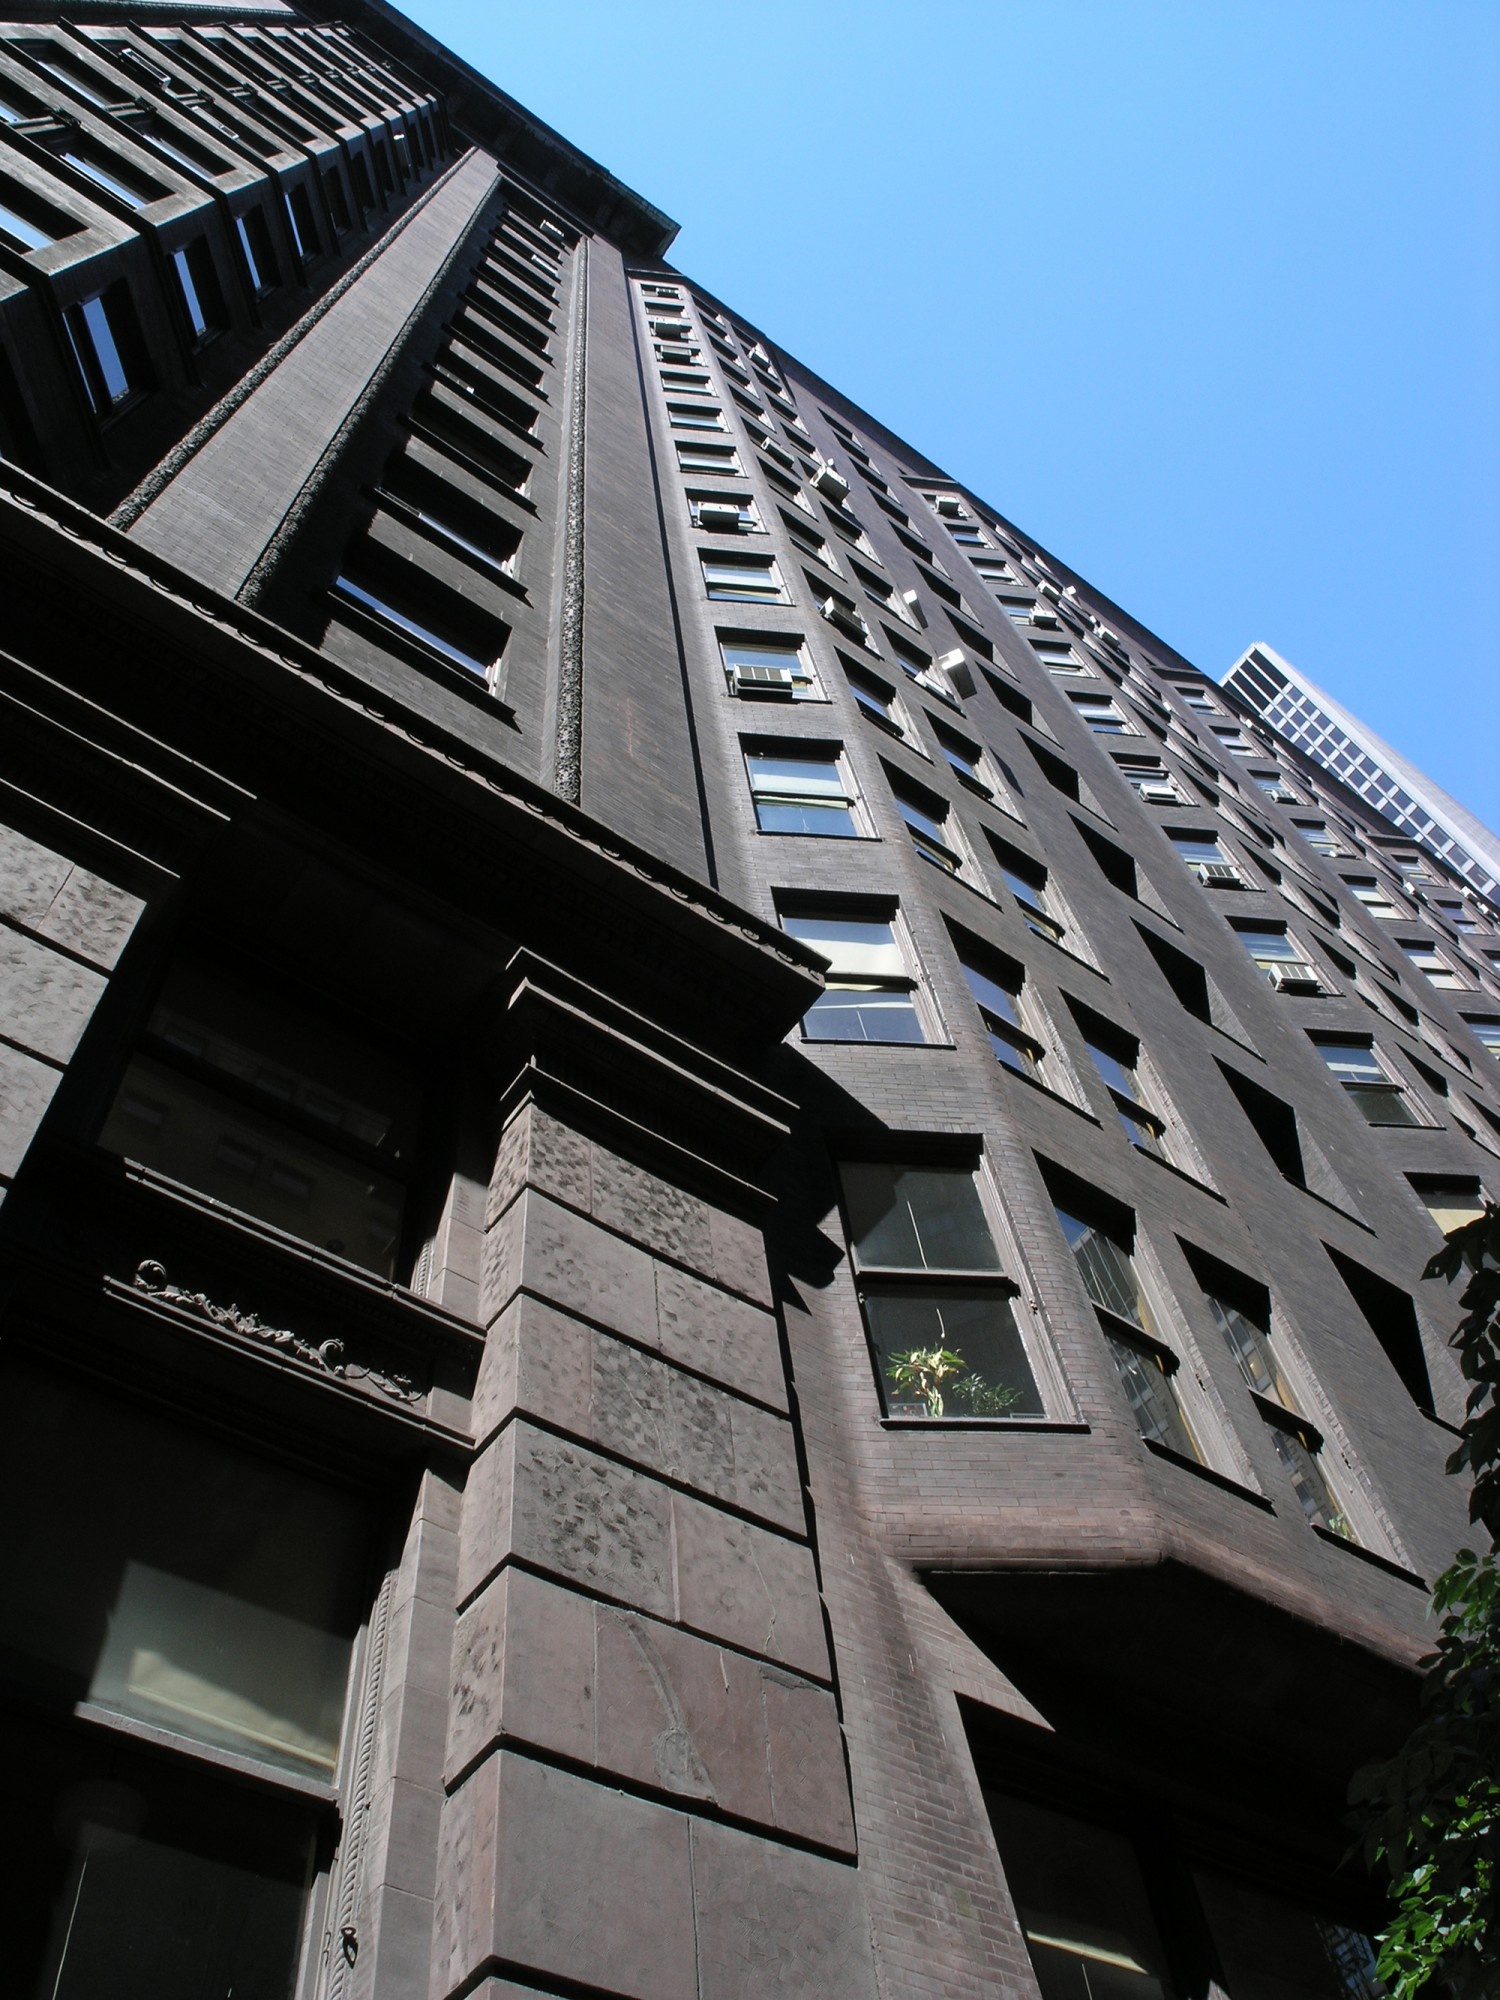 Monadnock building tours chicago architecture - Architecture of a building ...